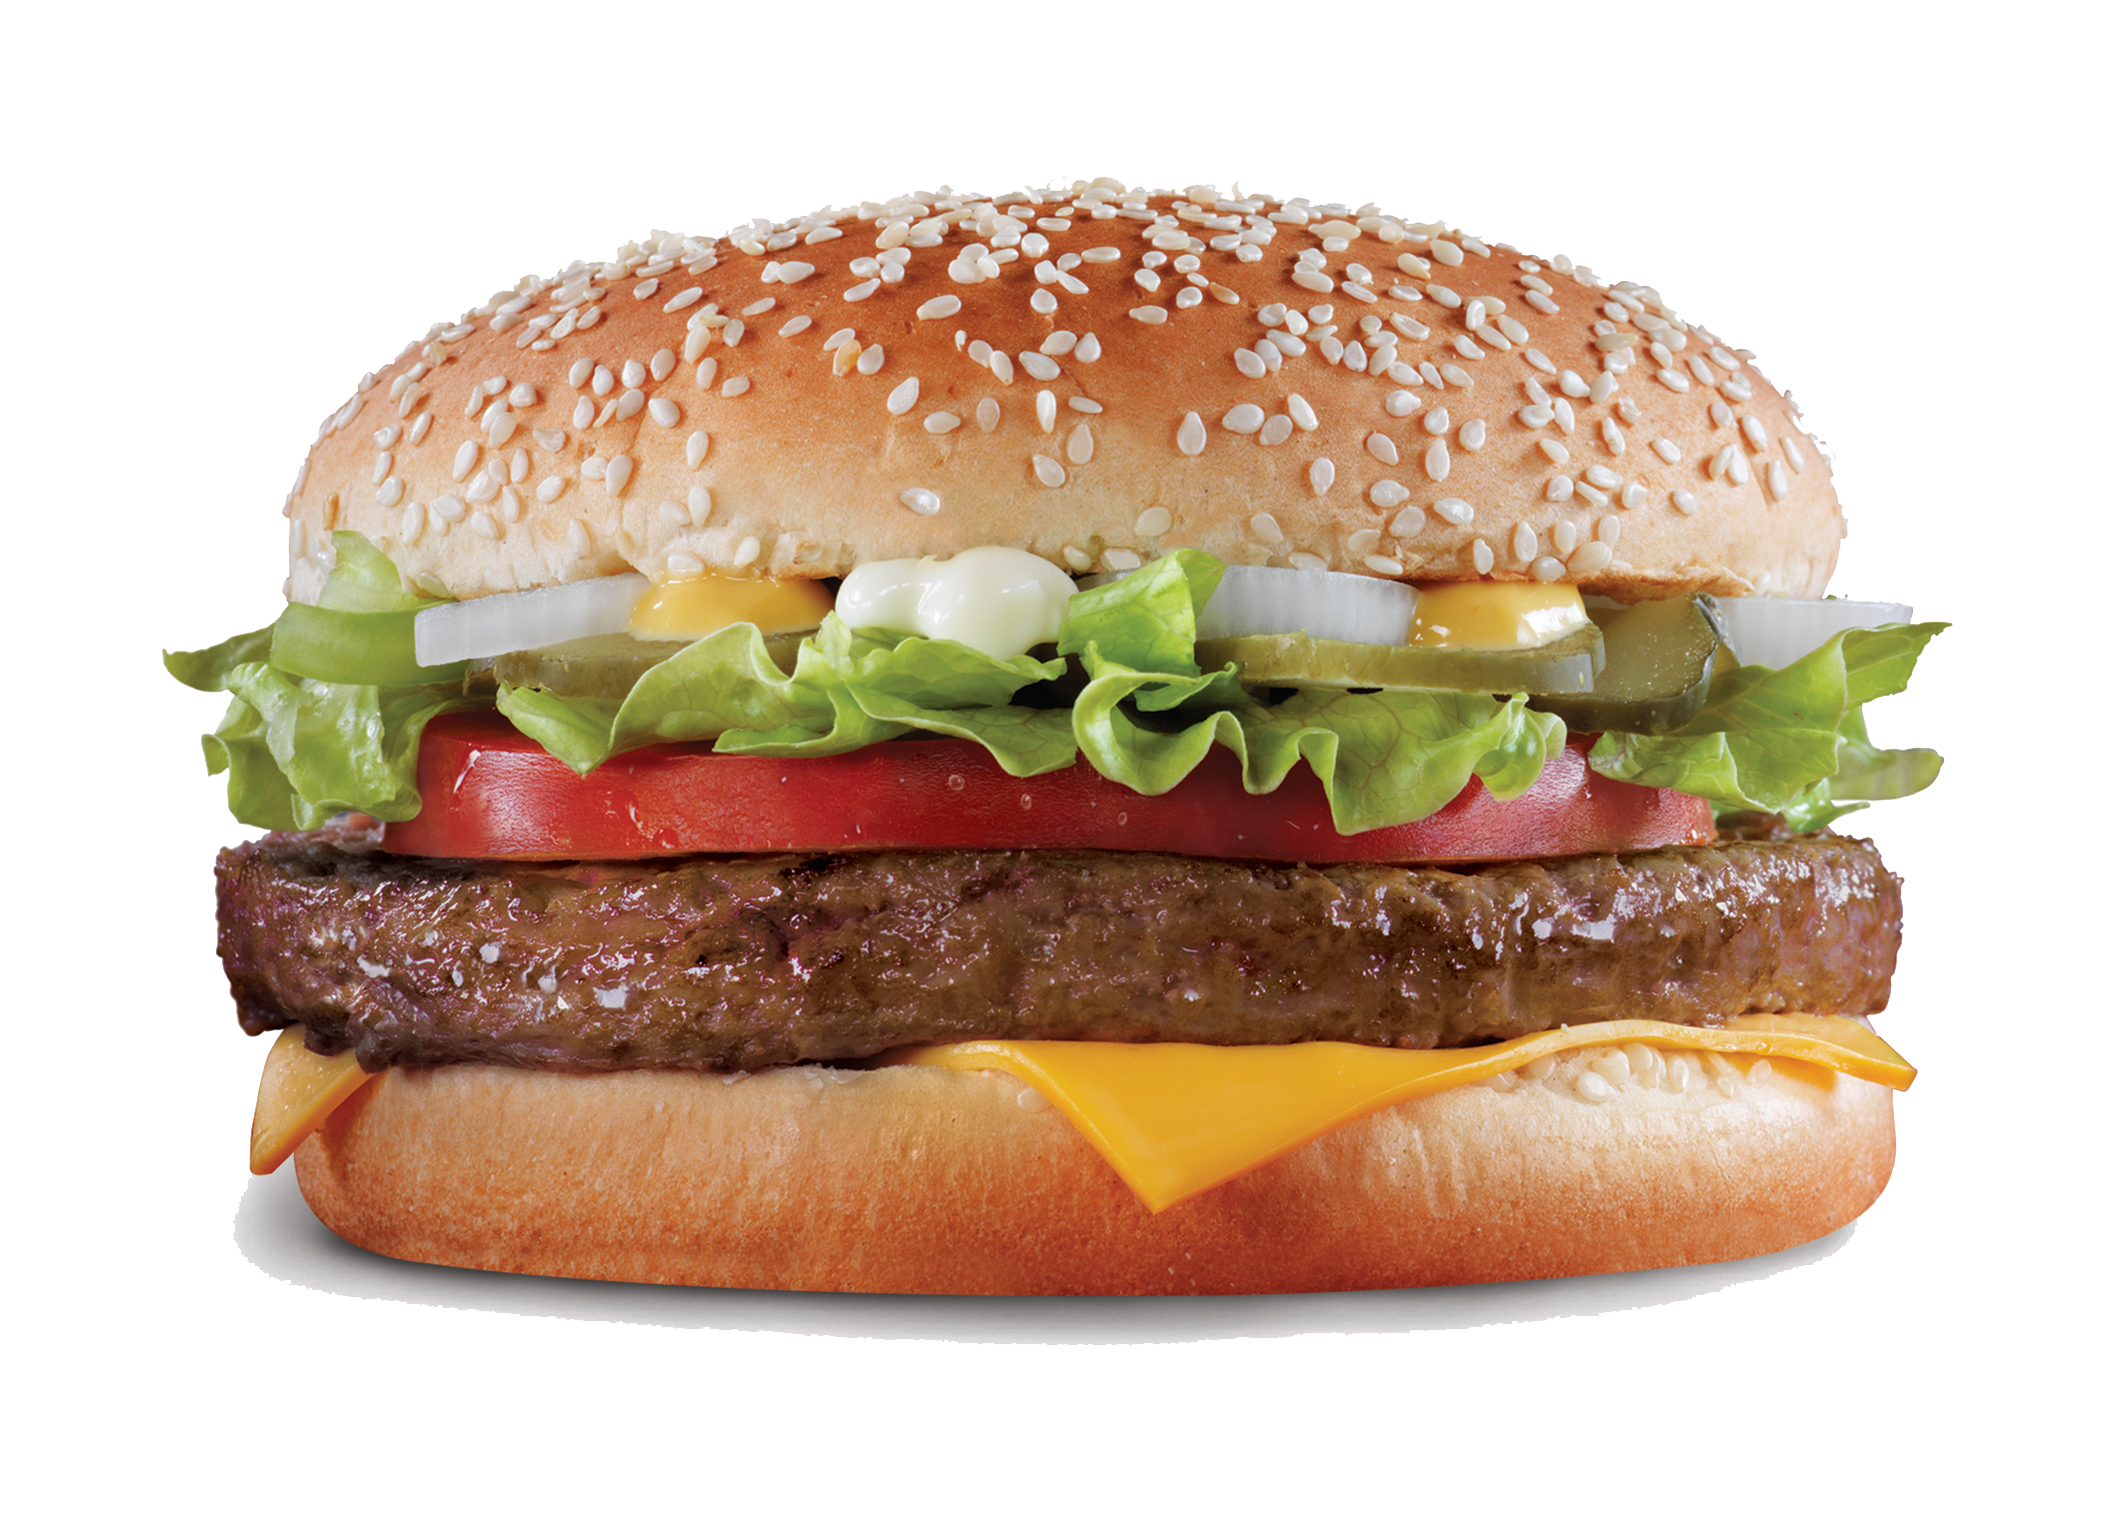 Burger PNG Transparent Images.